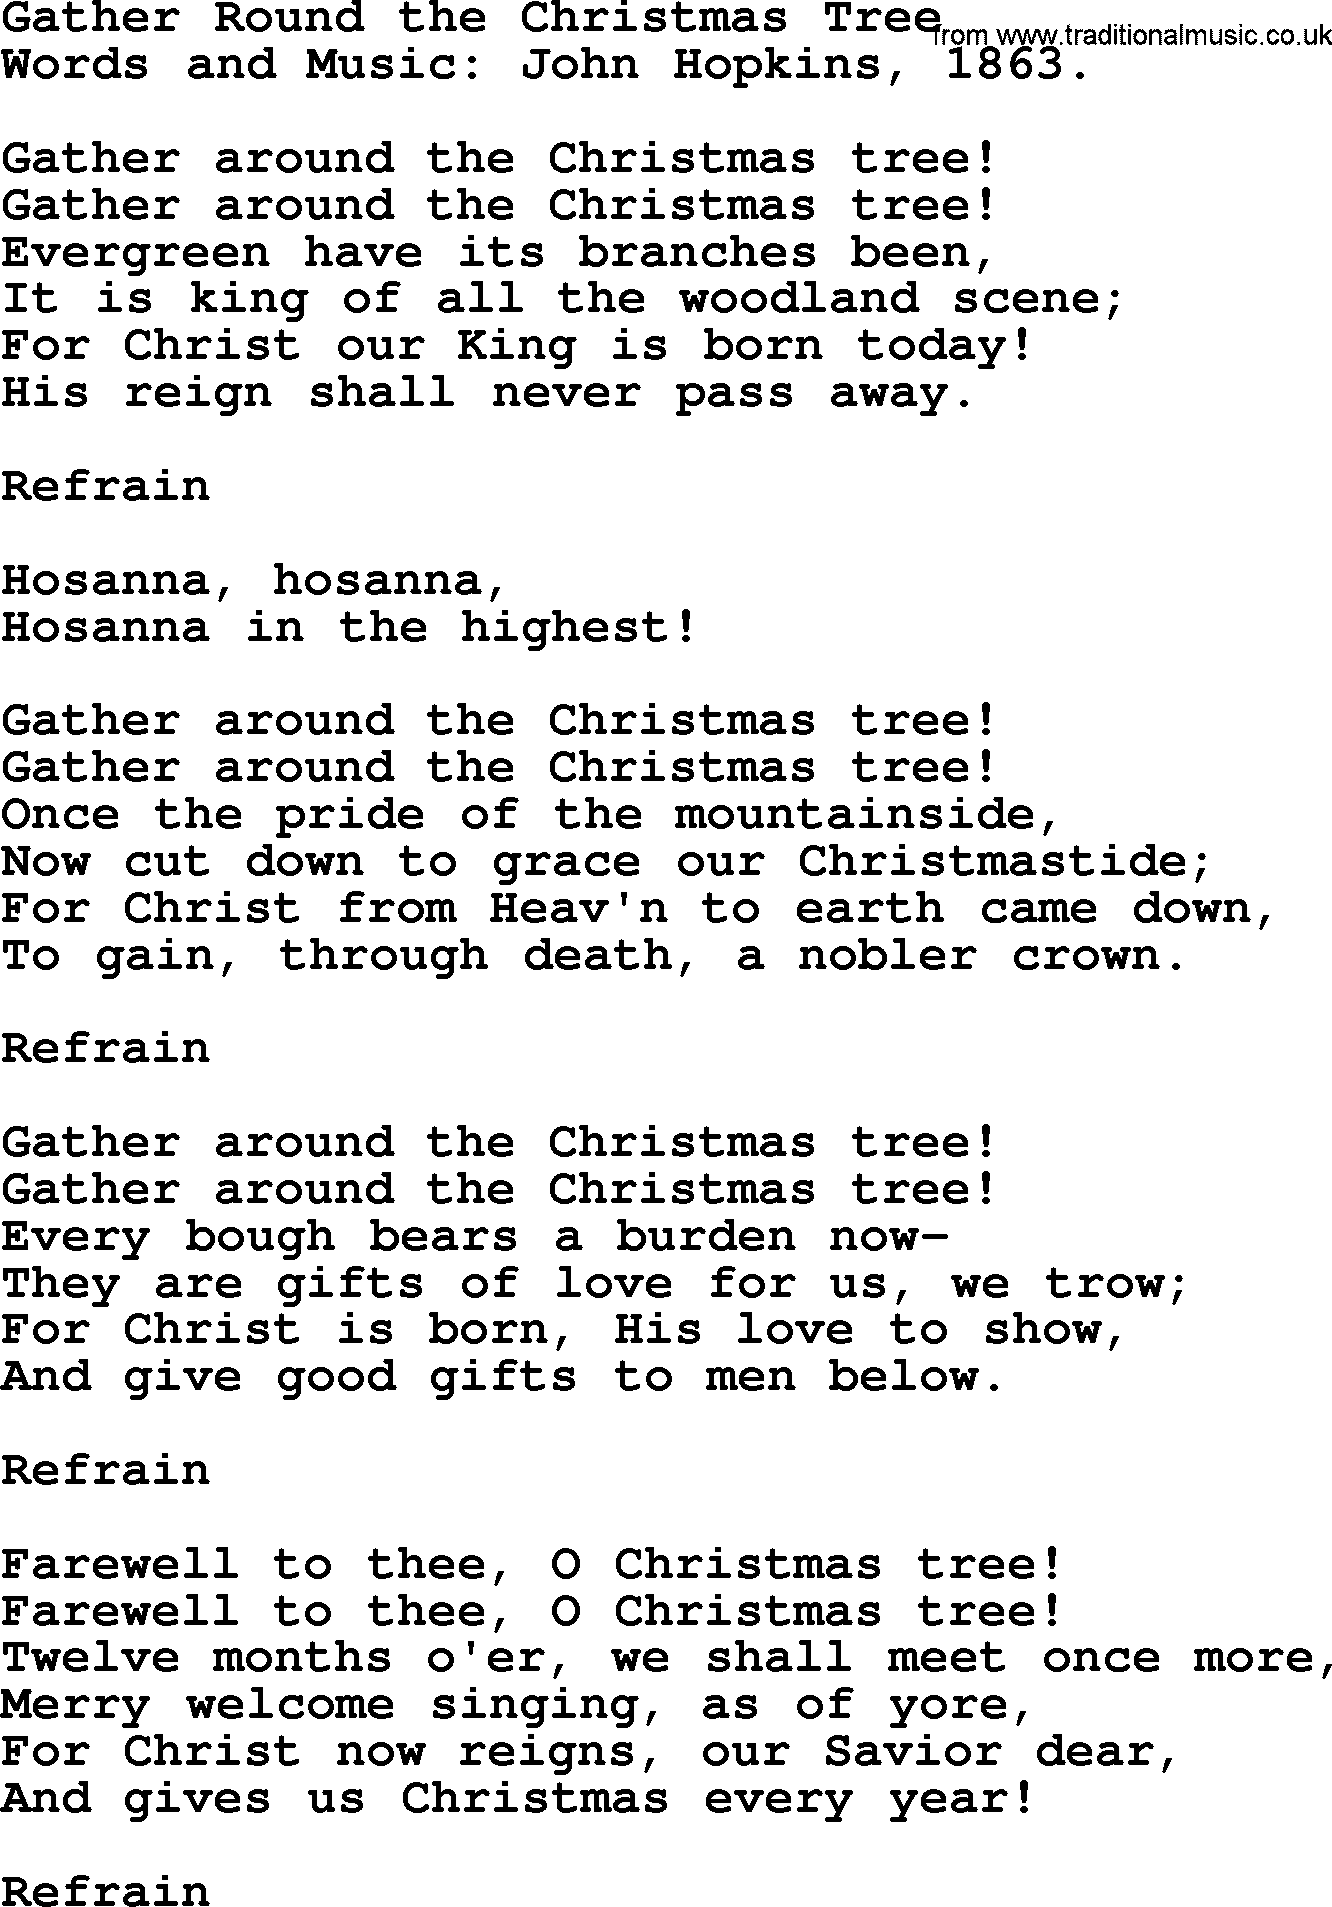 Christmas Hymns, Carols and Songs, title: Gather Round The Christmas ...